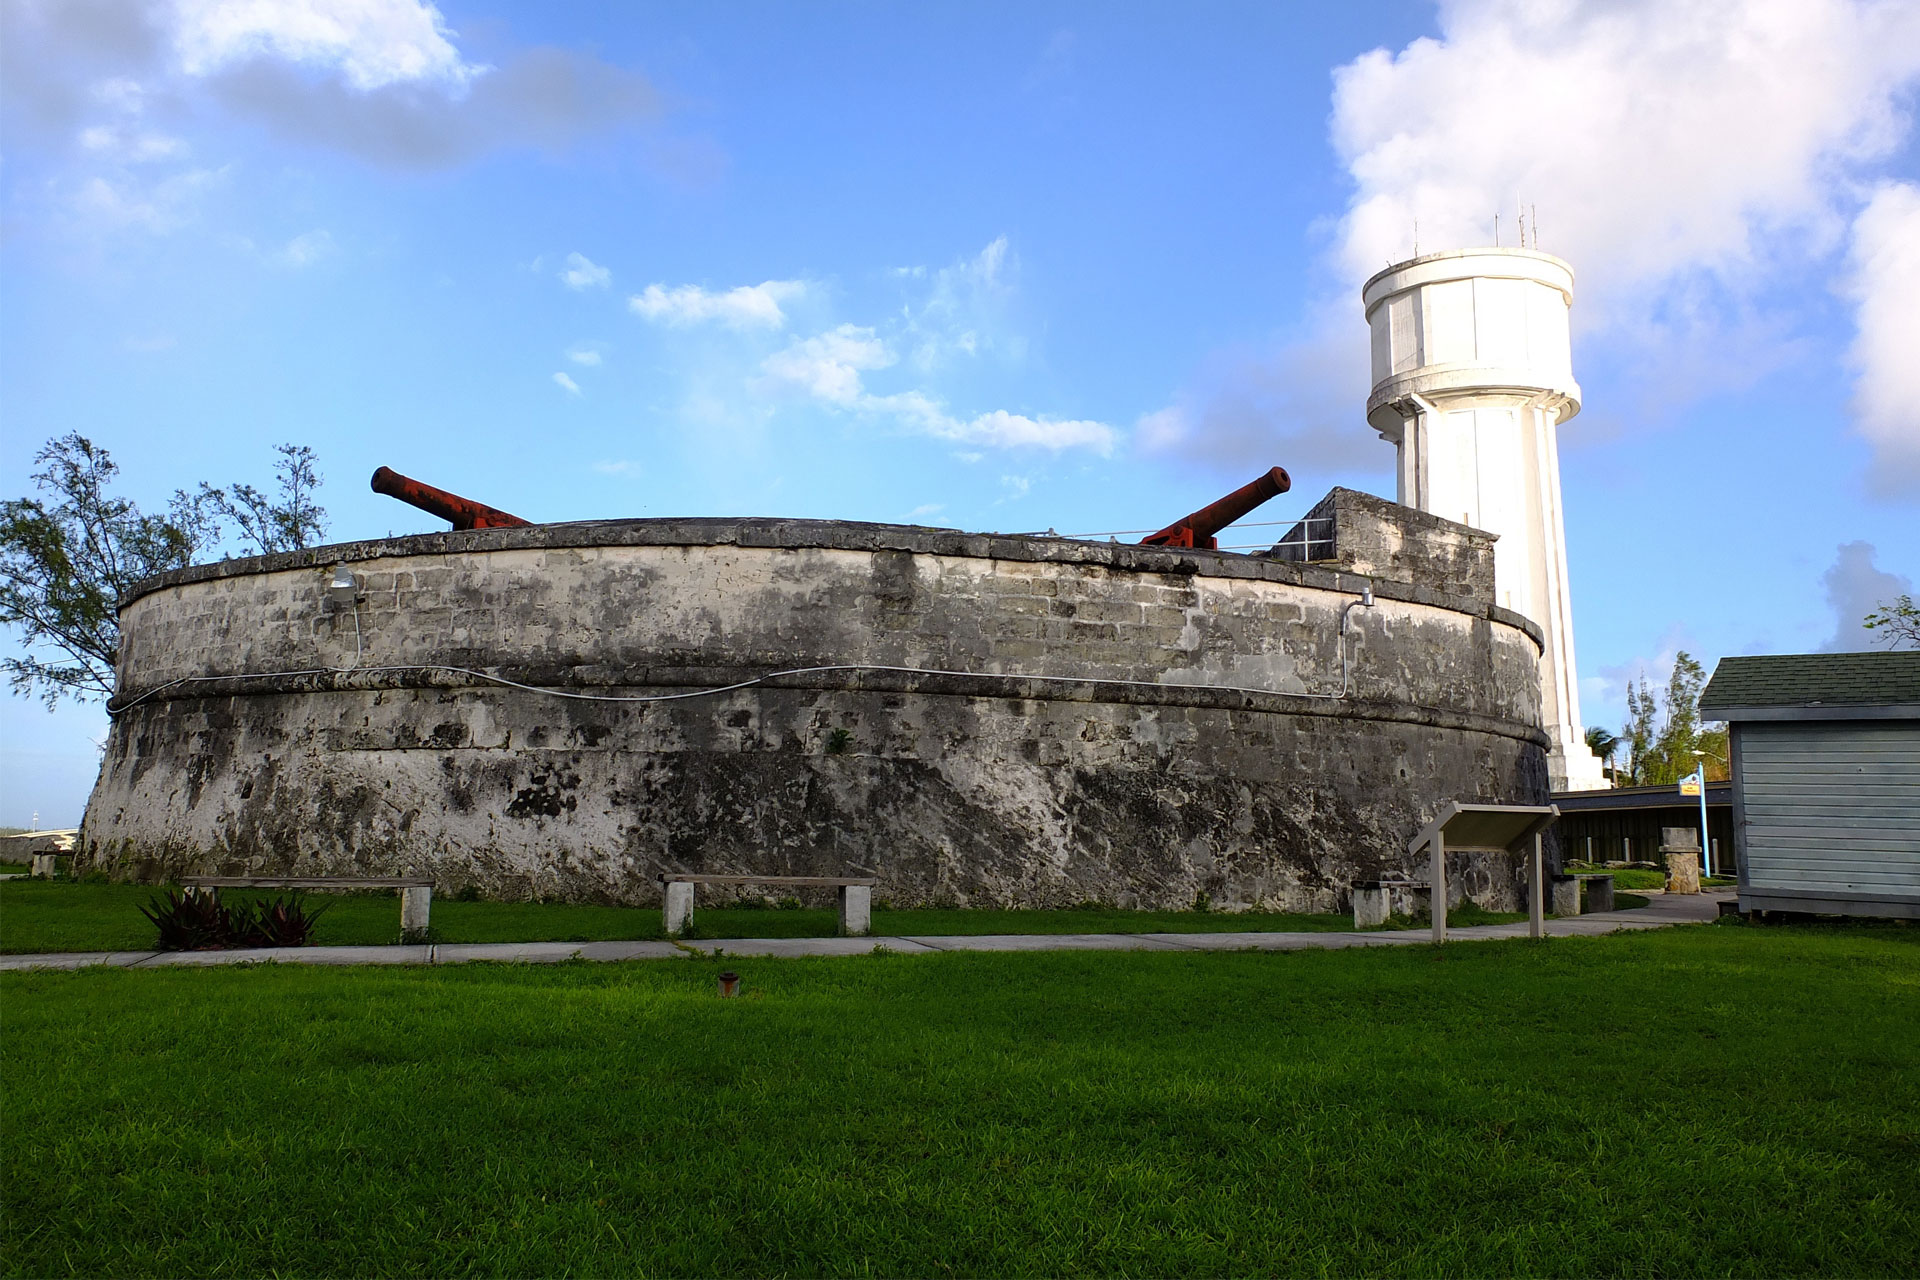 Fort Fincastle in Nassau, Bahamas; Courtesy of Robert Szymanski/Shutterstock.com